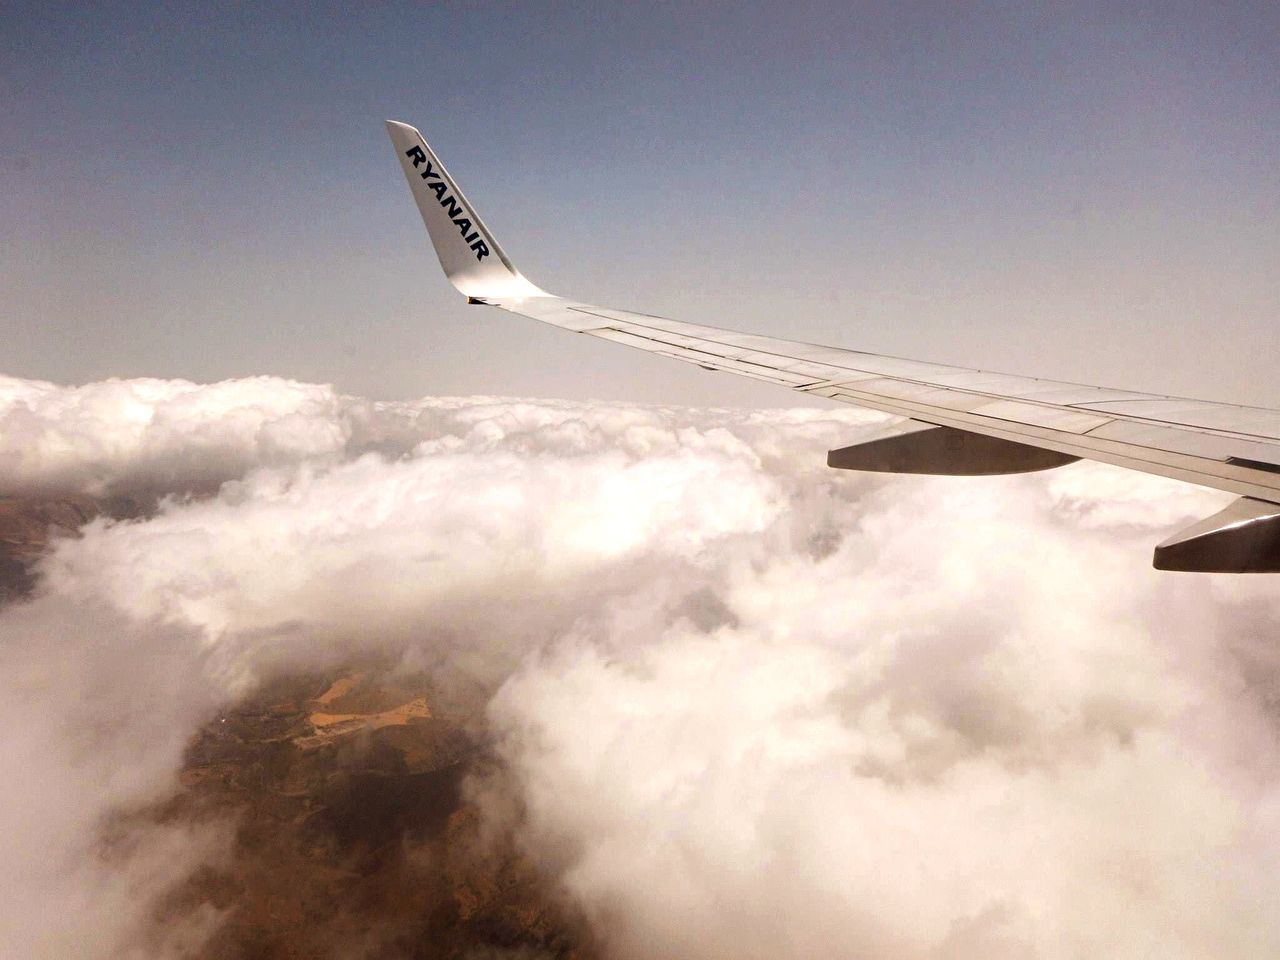 airplane, transportation, journey, sky, flying, air vehicle, no people, airplane wing, day, nature, outdoors